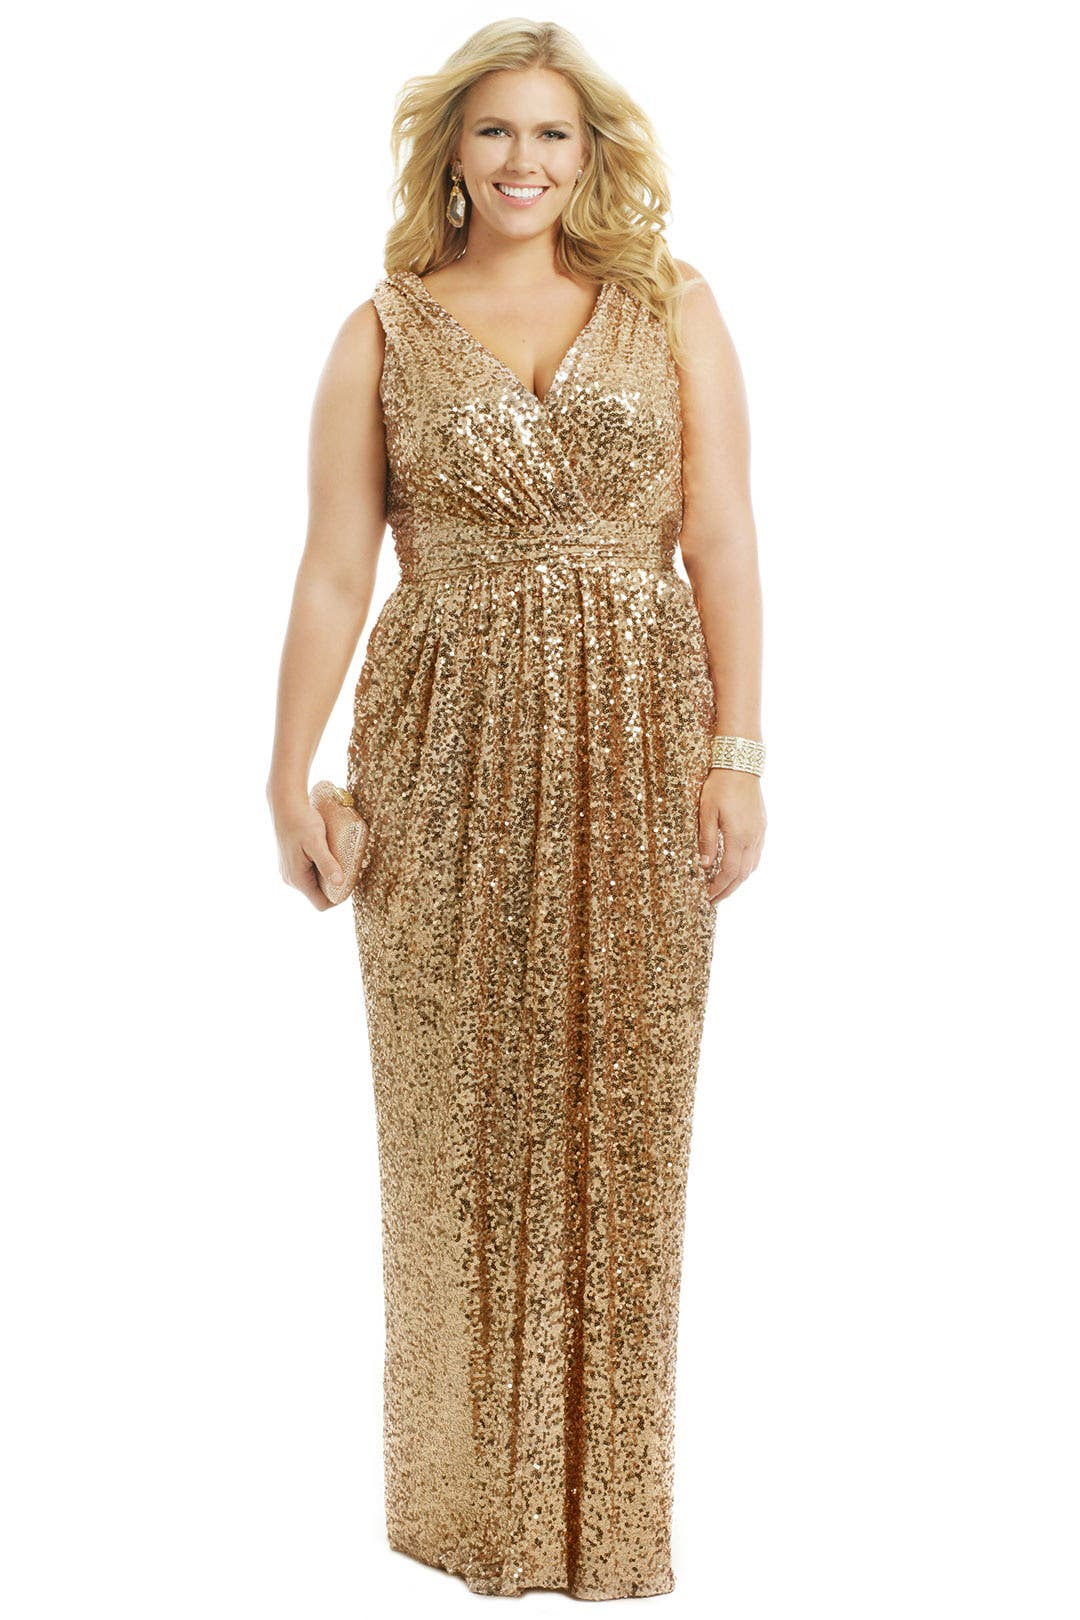 Golden Hour Gown By Badgley Mischka For 150